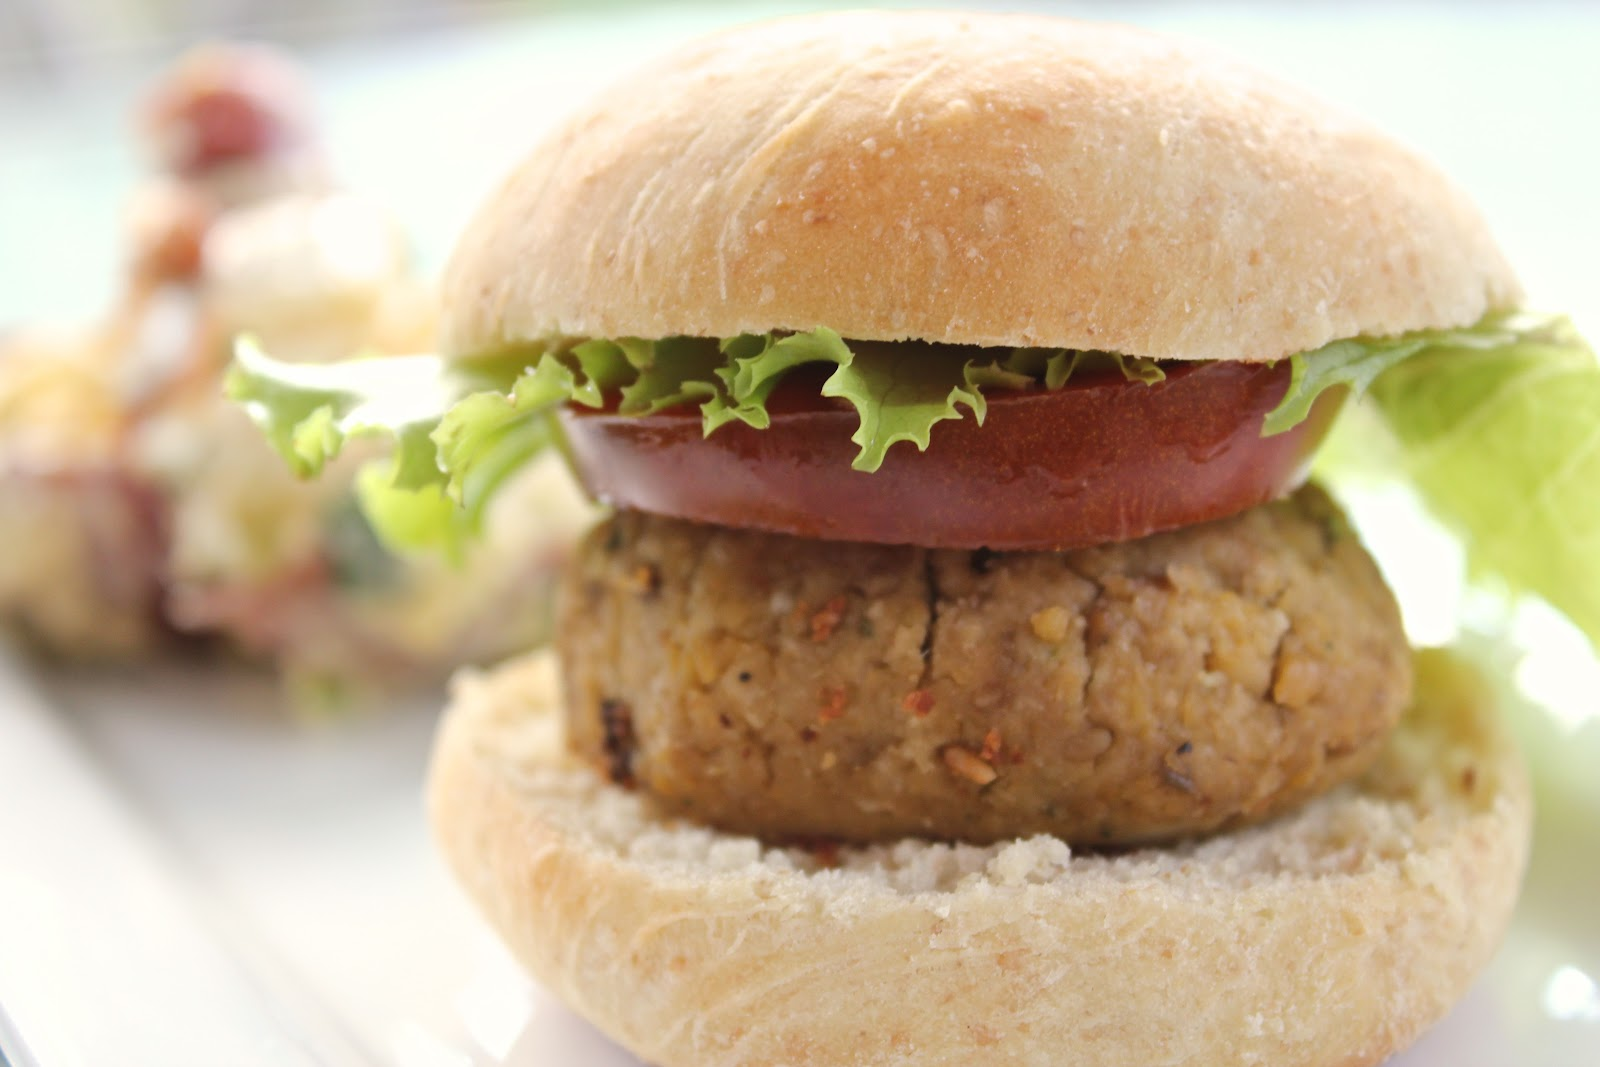 Mmmm - top with some tahini and enjoy your chickpea burger perfection!